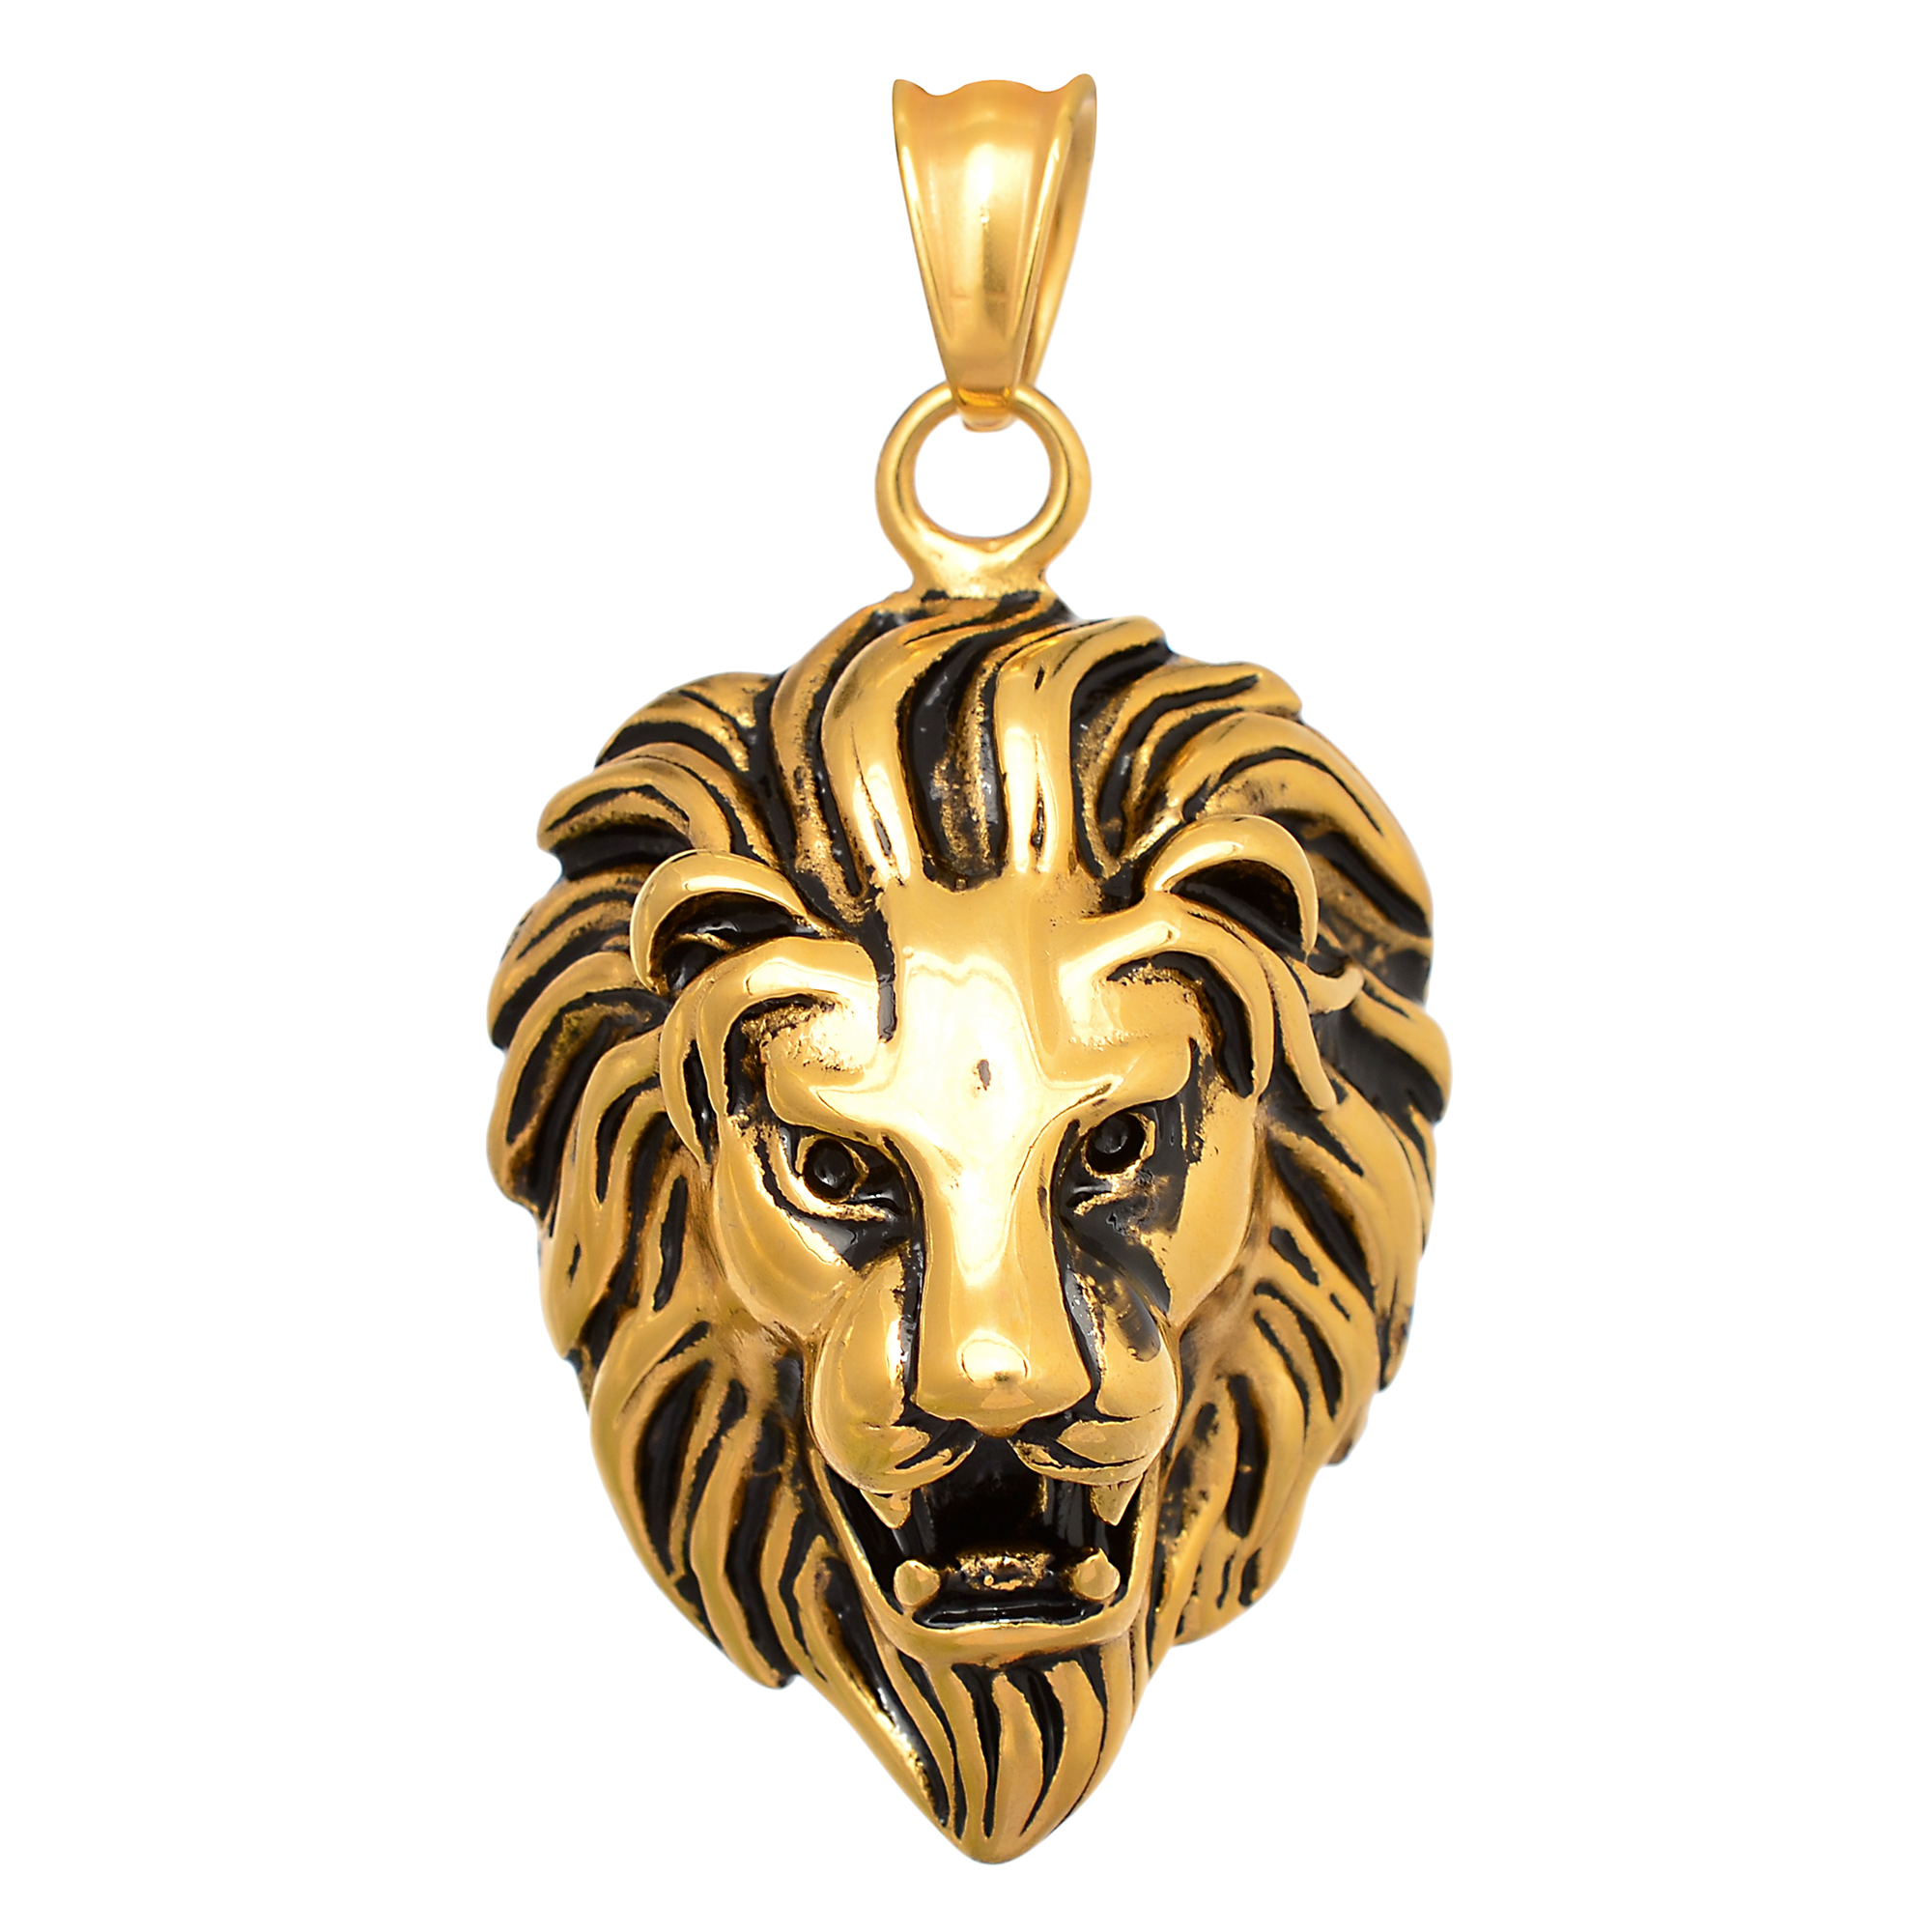 jewelry new york style hop diamond necklace street personalized product lion wholesale crown hip necklaces pendant dance head lariat